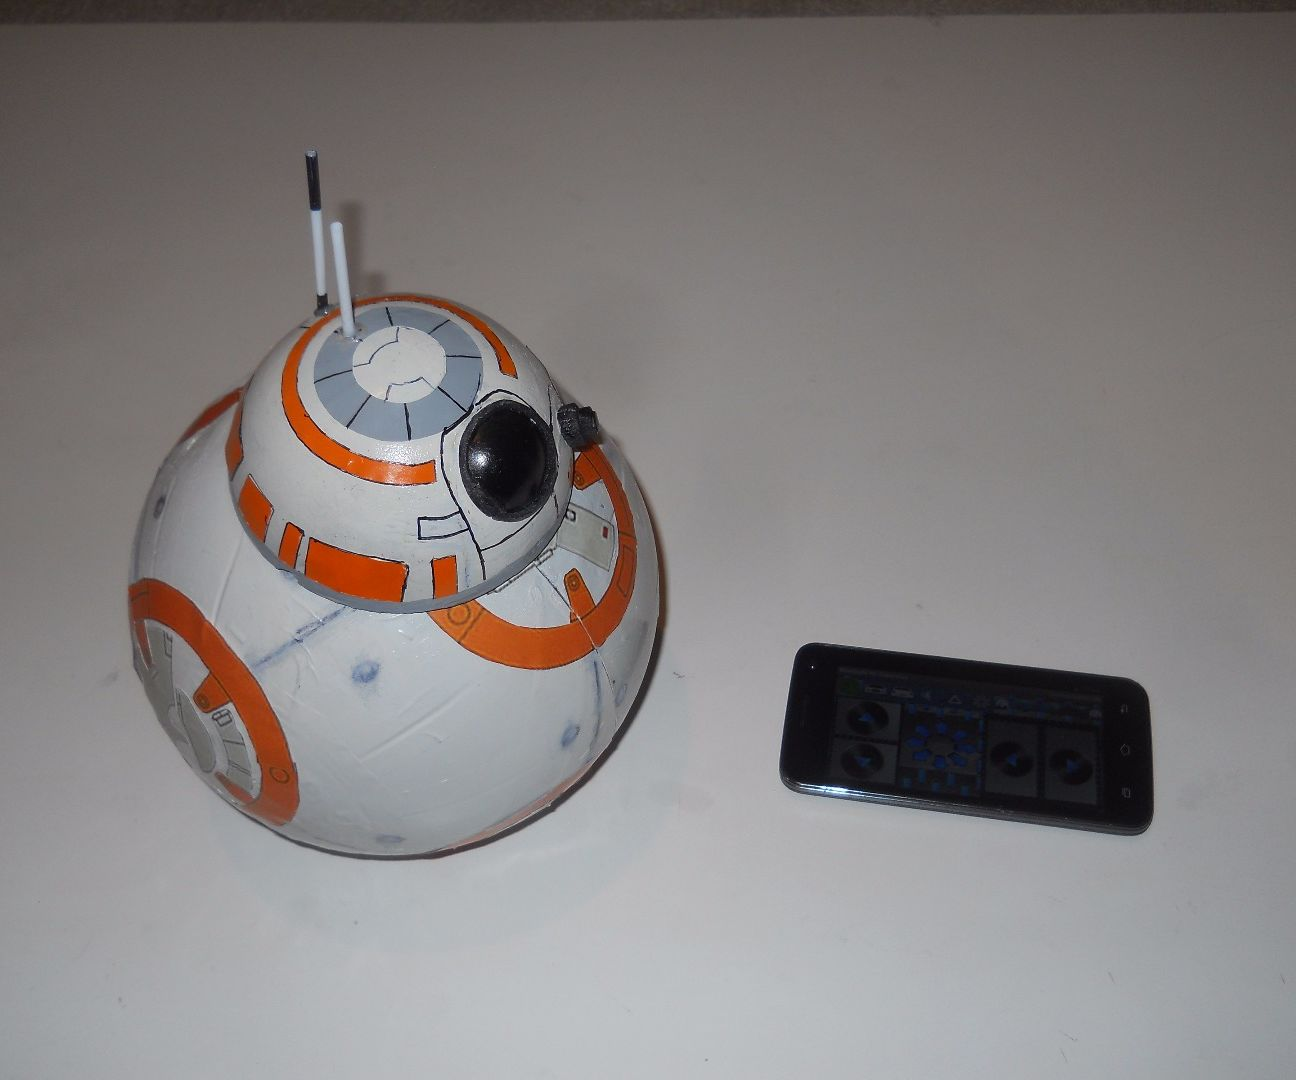 DIY Bluetooth Phone Controlled BB-8 Droid With Arduino UNO